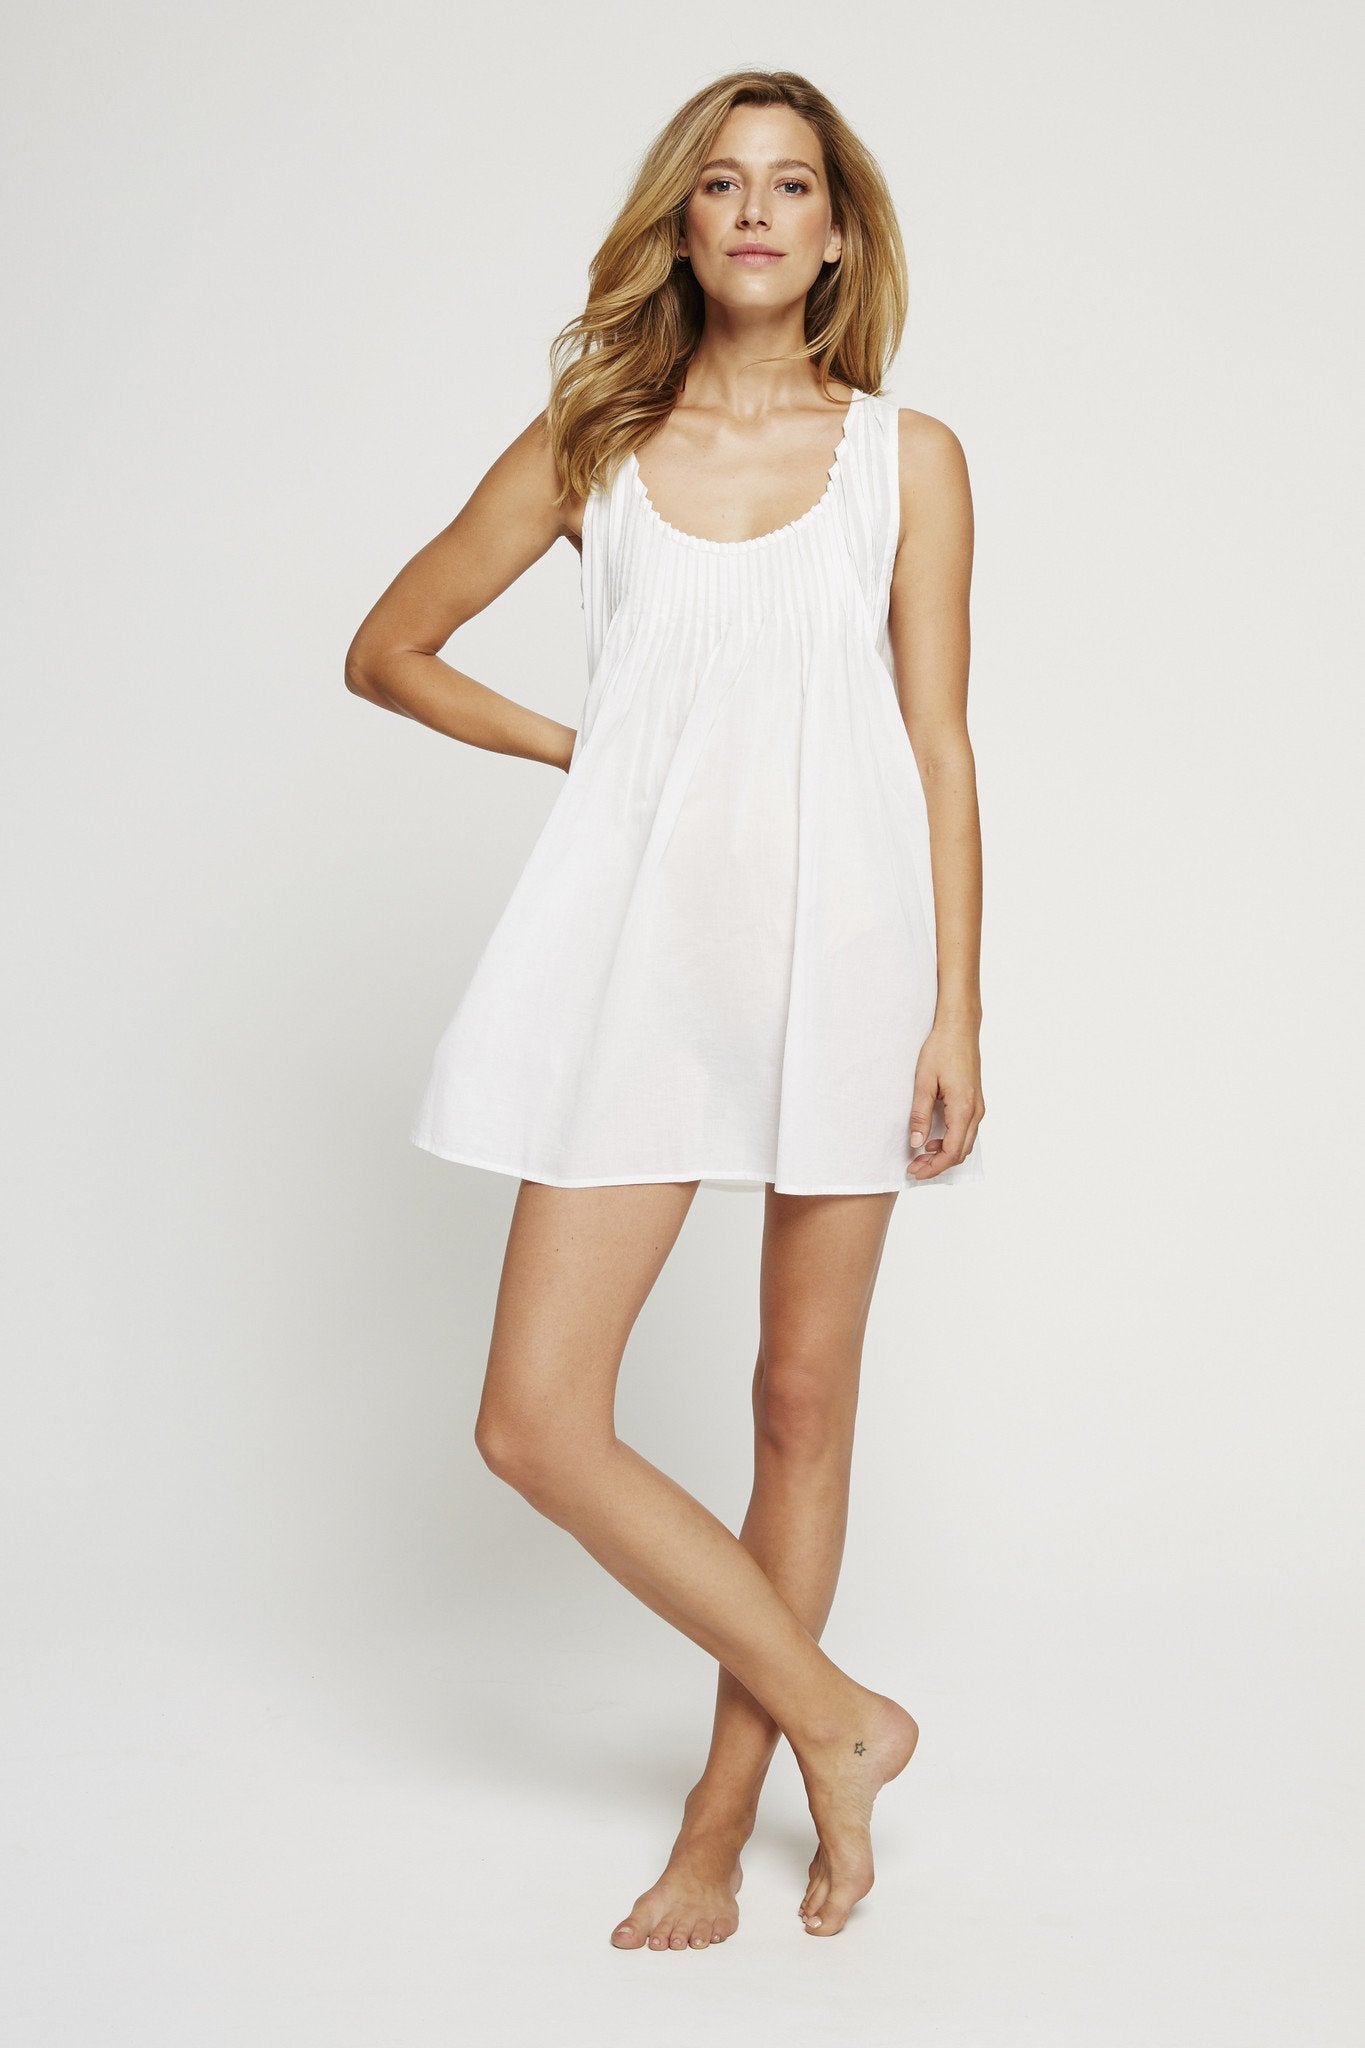 Pintuck Sleeveless Nightie - PLF Dreams. Pour les Femmes by Robin Wright & Karen Fowler